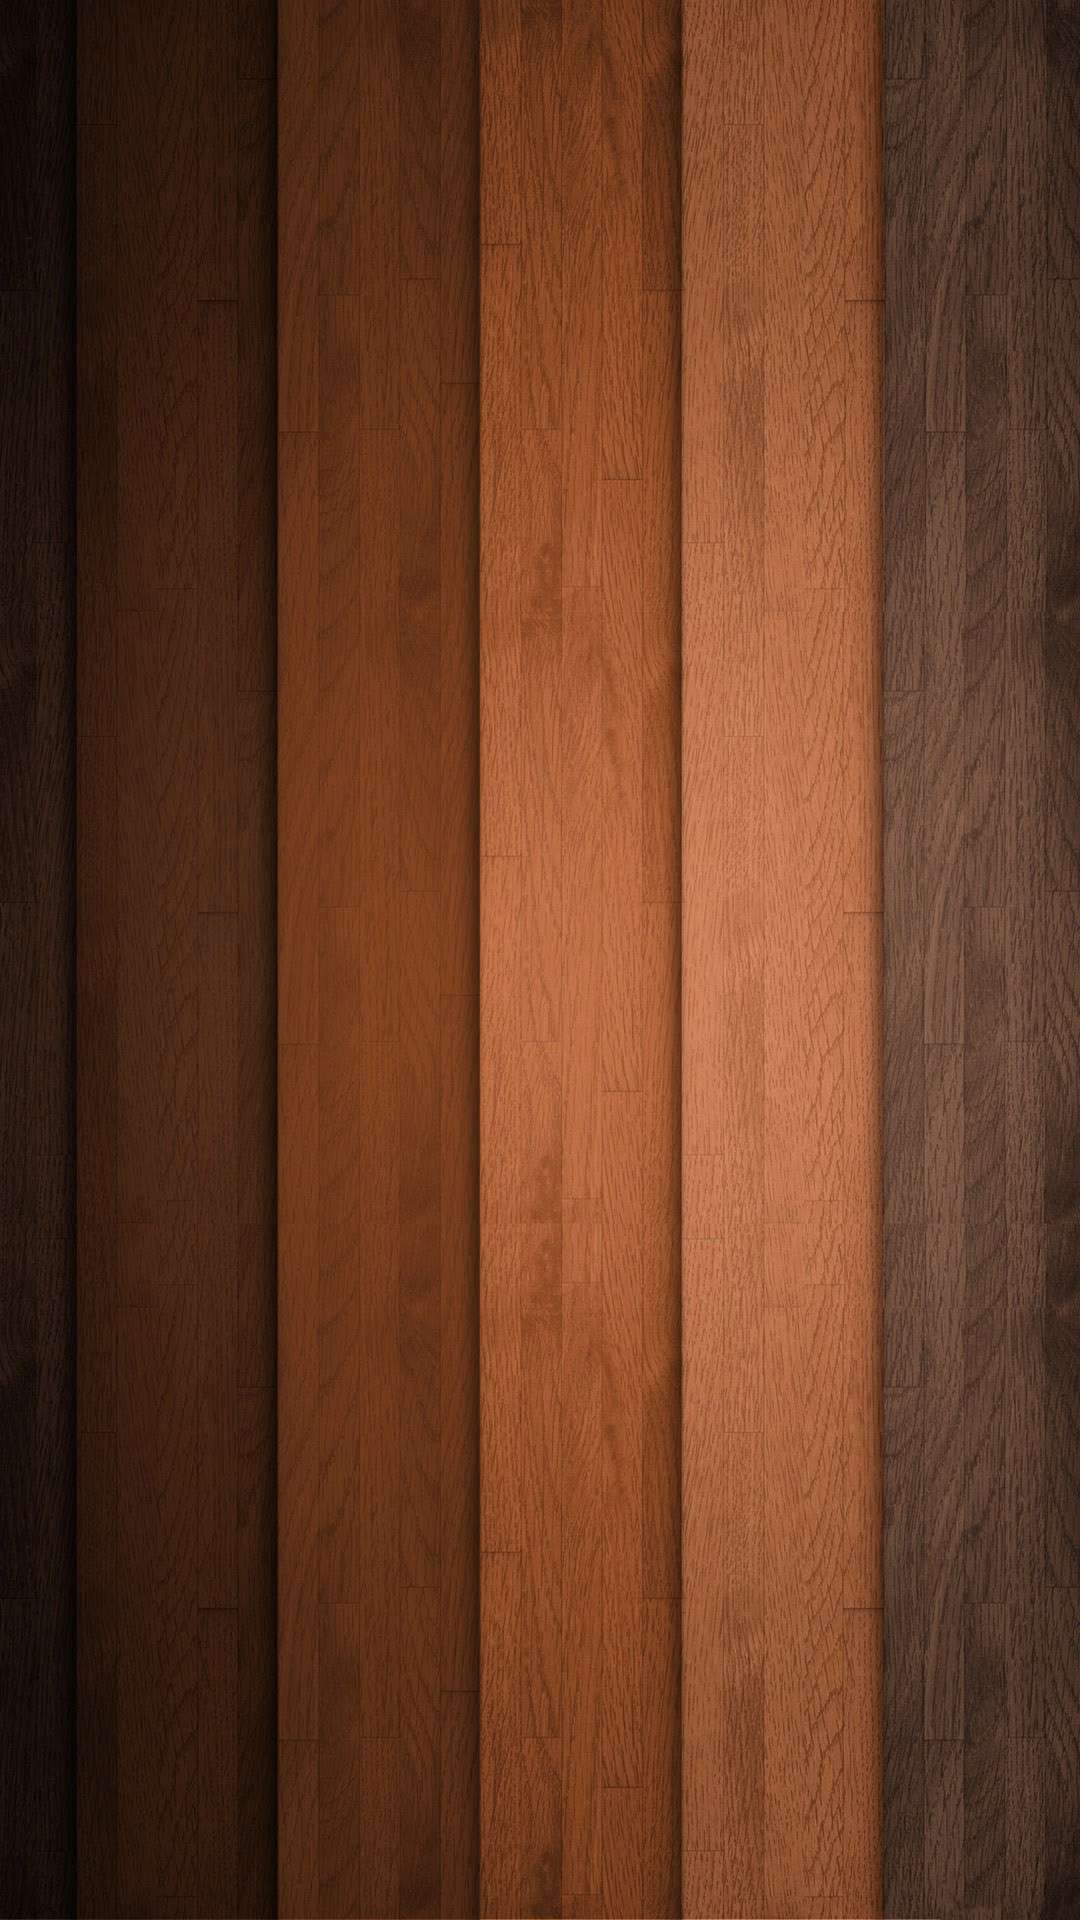 Beautiful   Wallpaper Home Screen Wood - wood-planks-pattern-texture-android-wallpaper  Photograph_979338.jpg